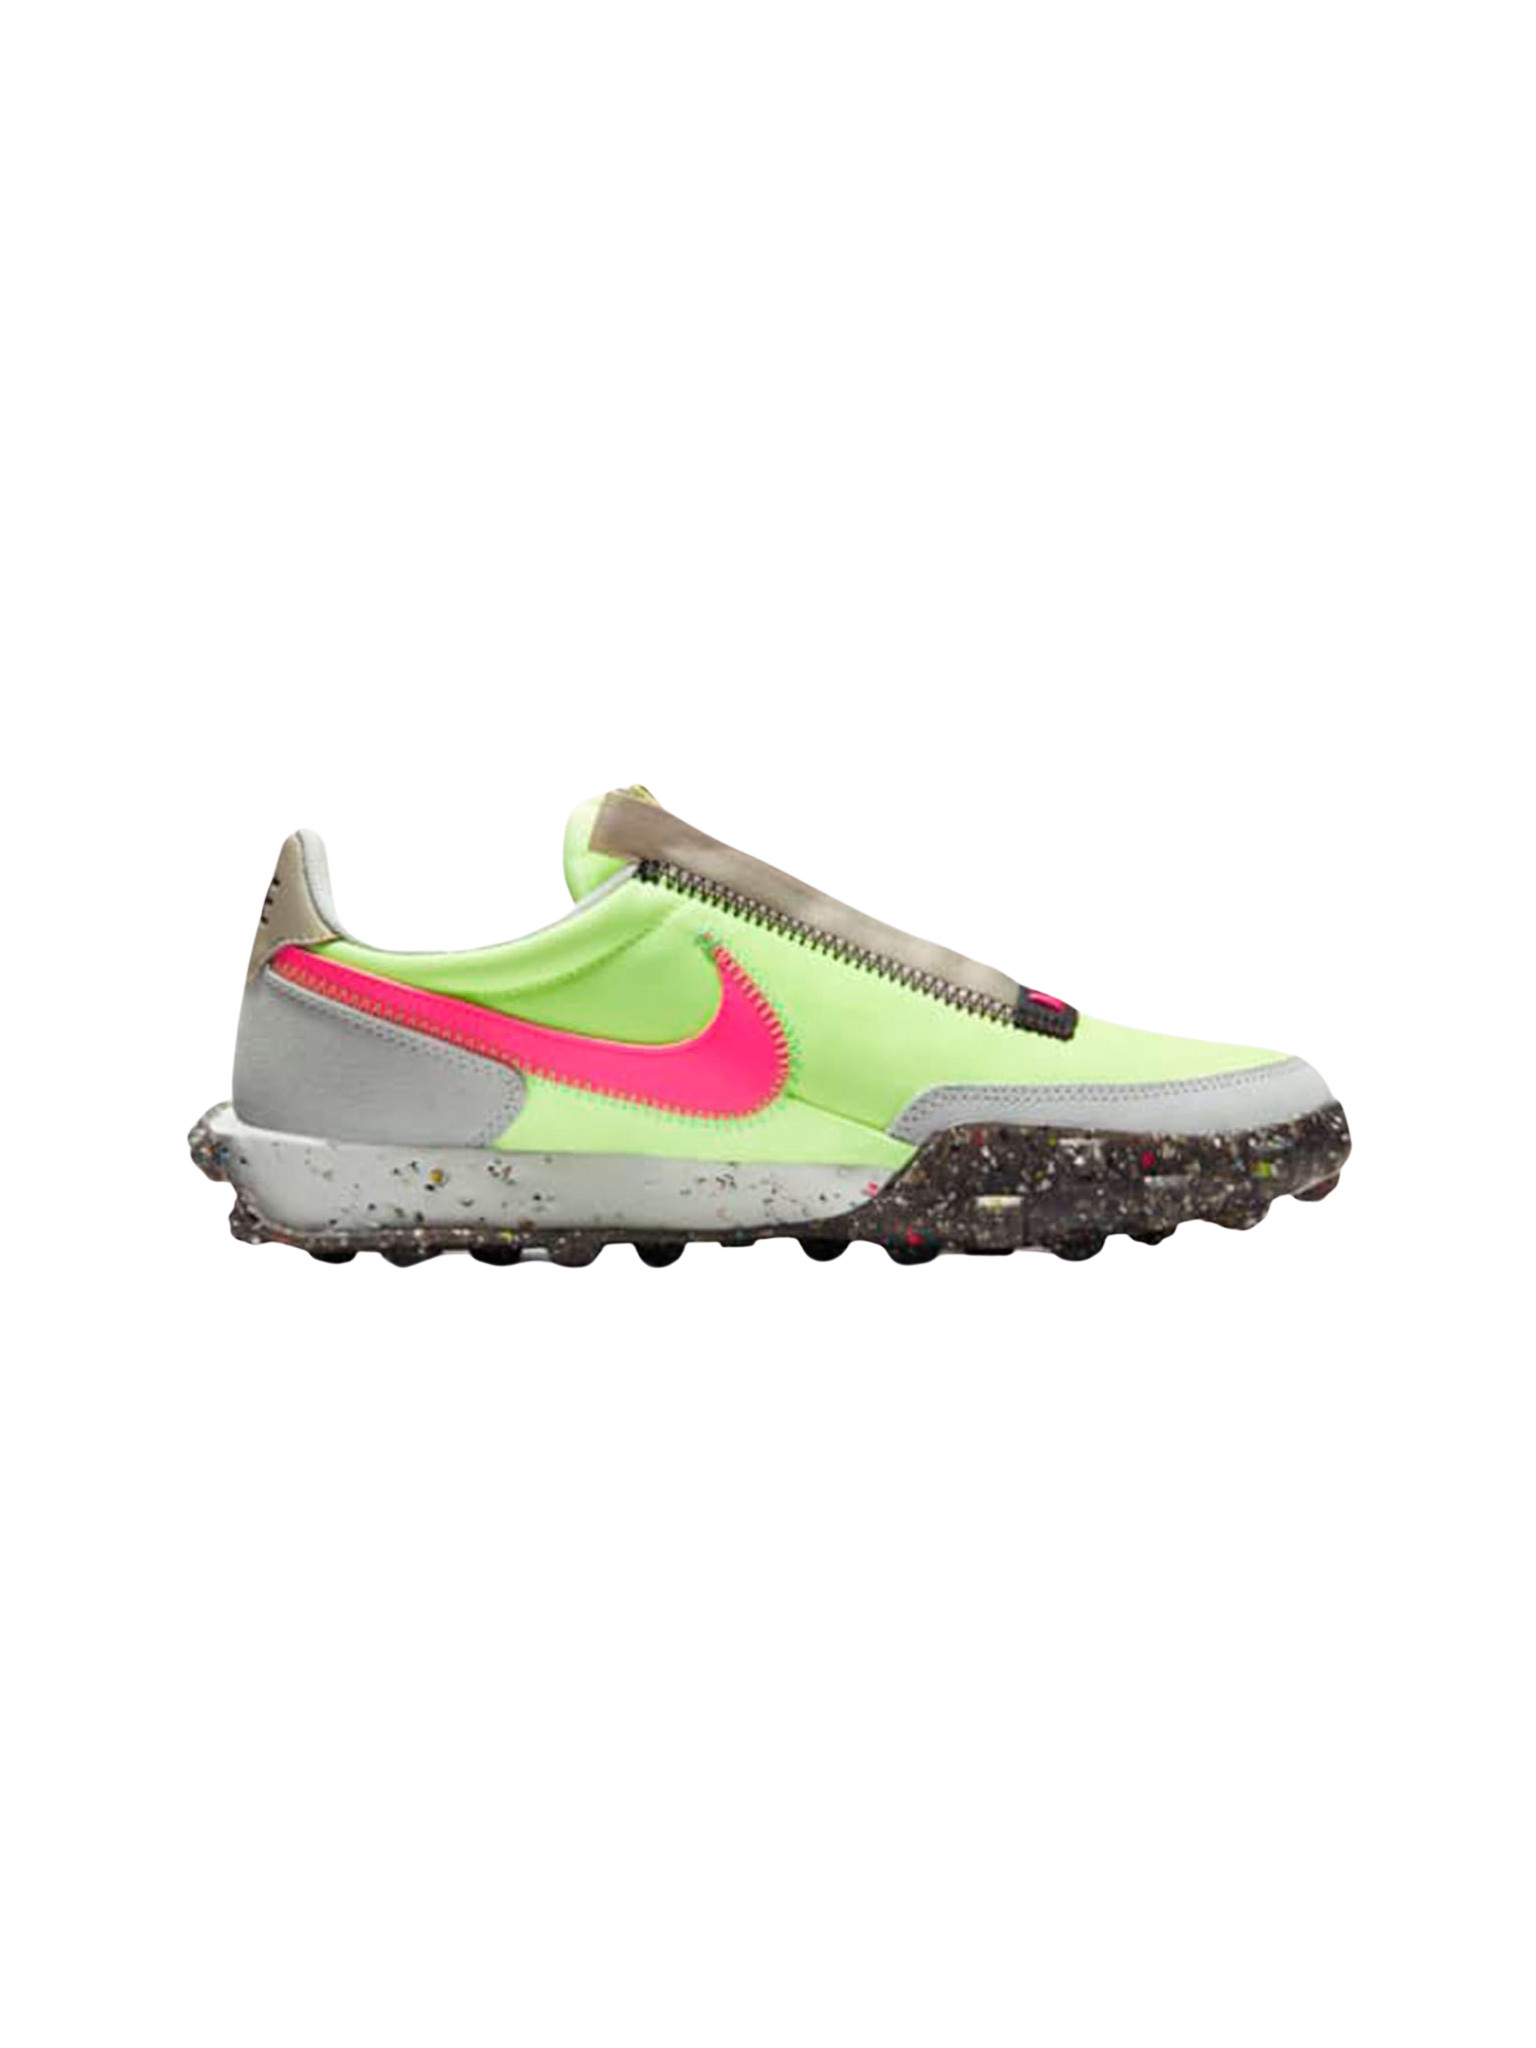 Women's Waffle Racer Crater Barely Volt Sneakers